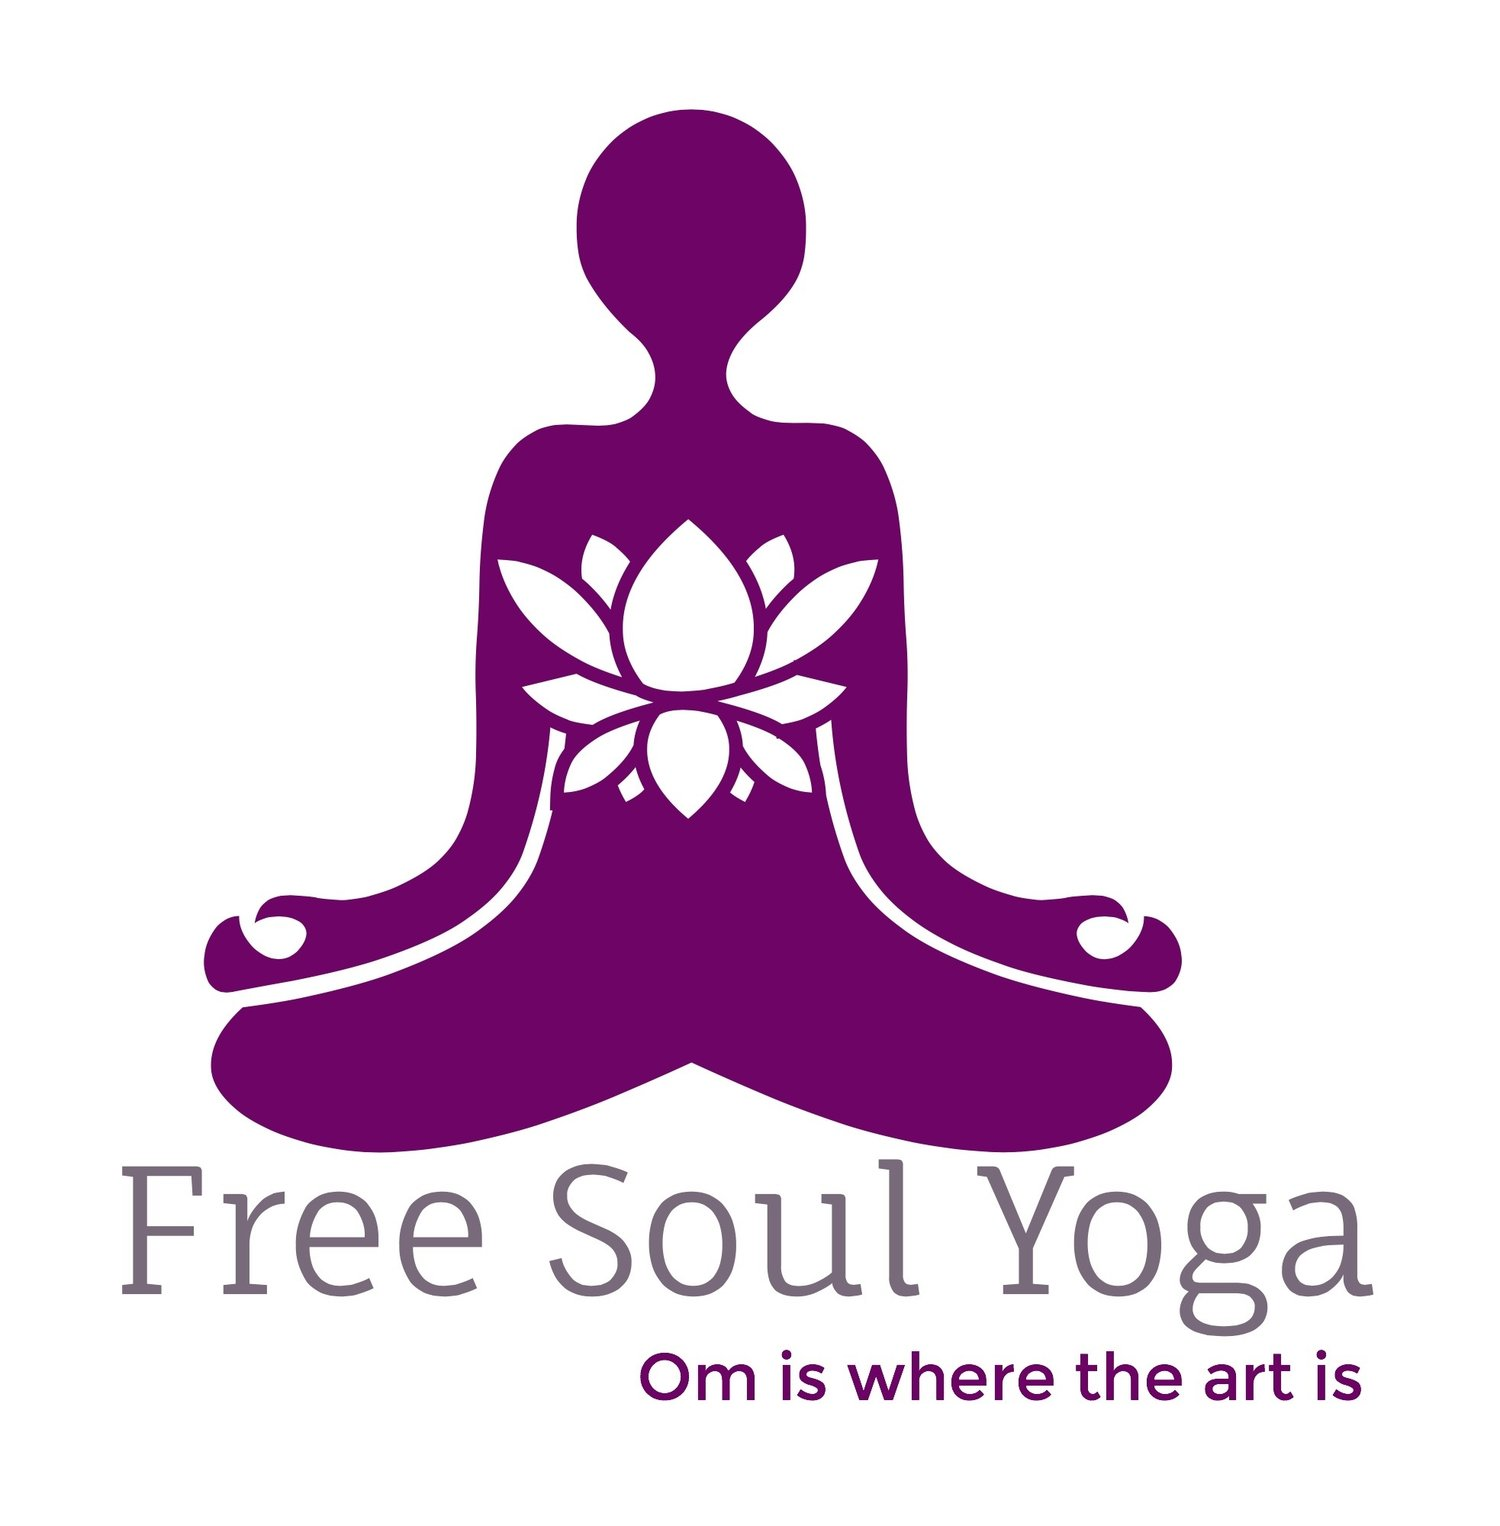 Om is where the art is...